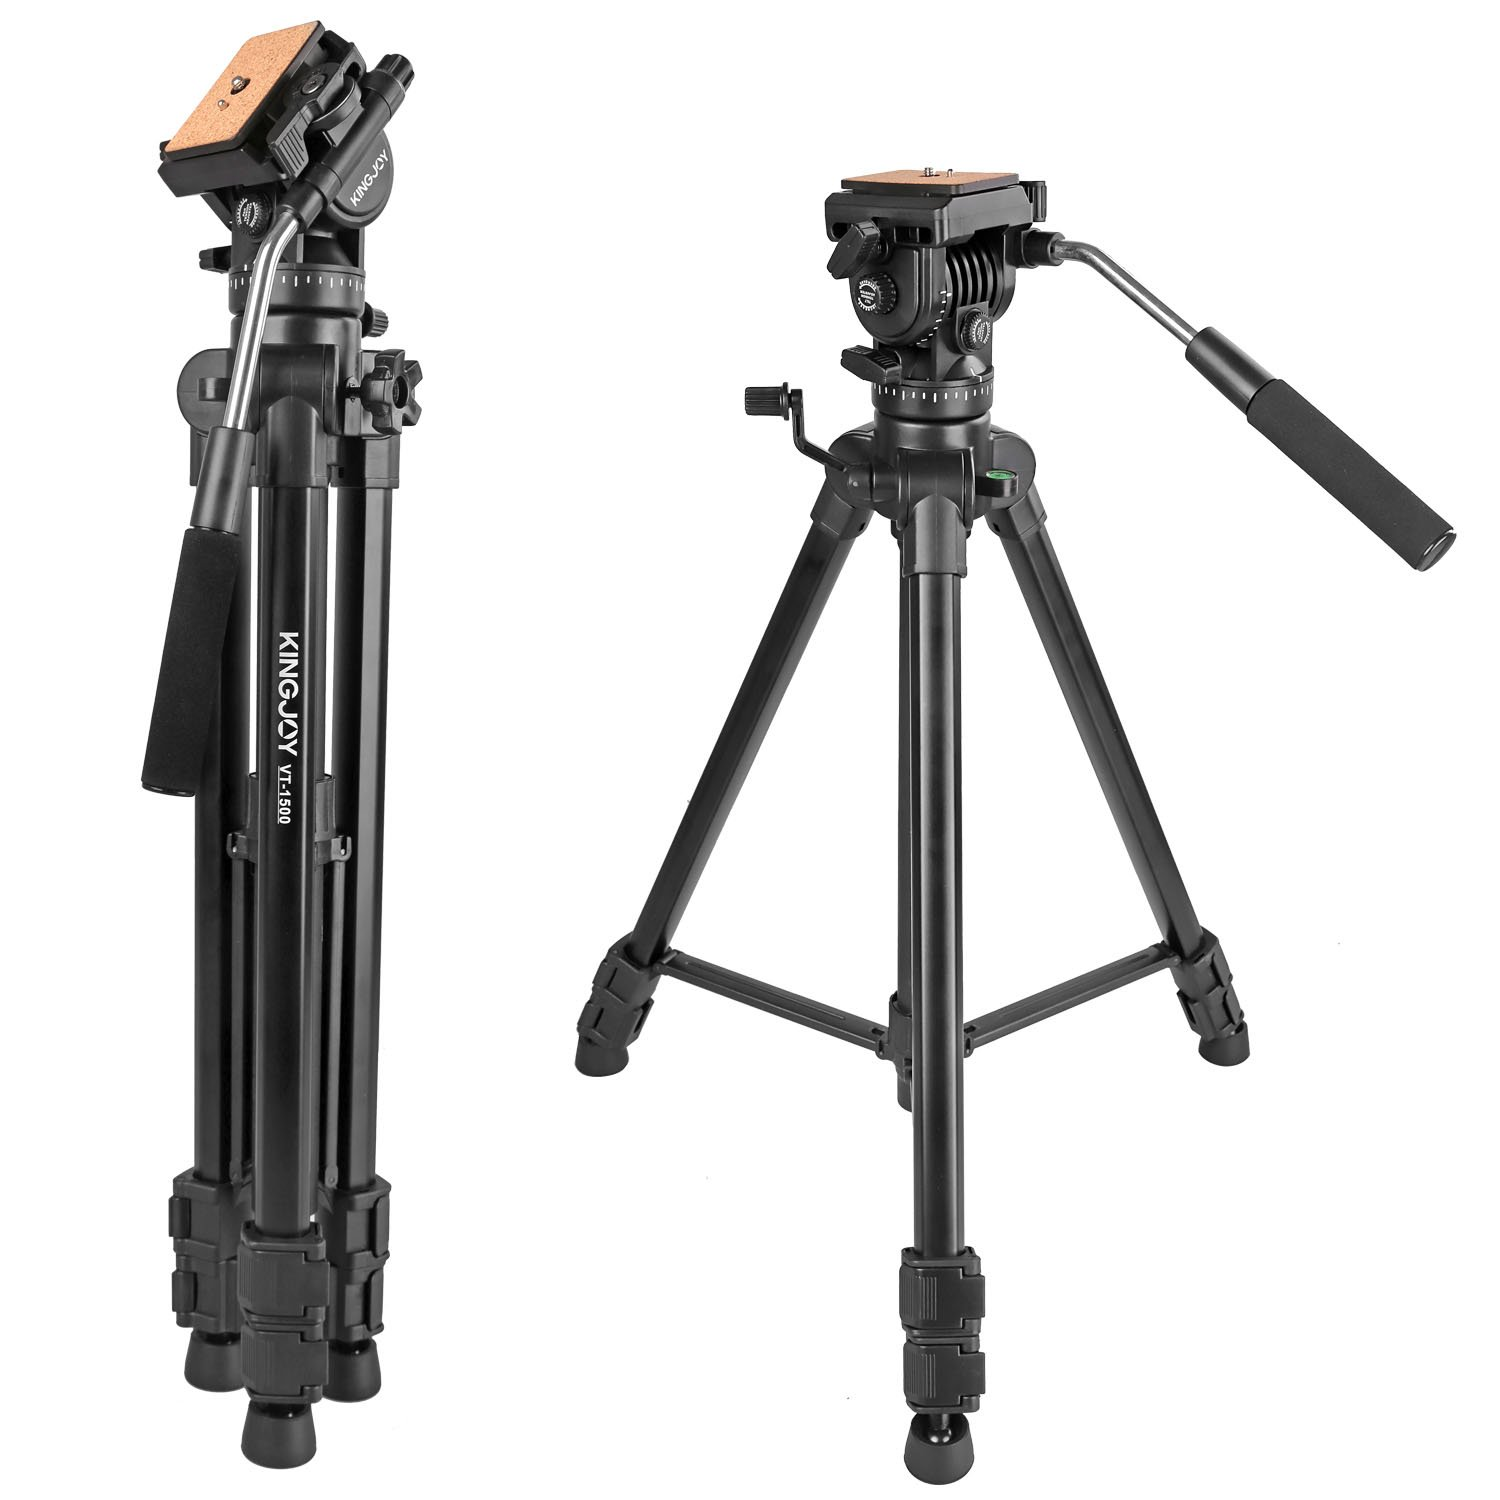 Video Tripod with Fluid Head, Kamisafe KINGJOY VT-1500 Travel Camera Tripod Aluminum Compatible for DSLR SLR Nikon Canon Sony Olympus Camcorder DV with Carry Bag by KAMISAFE